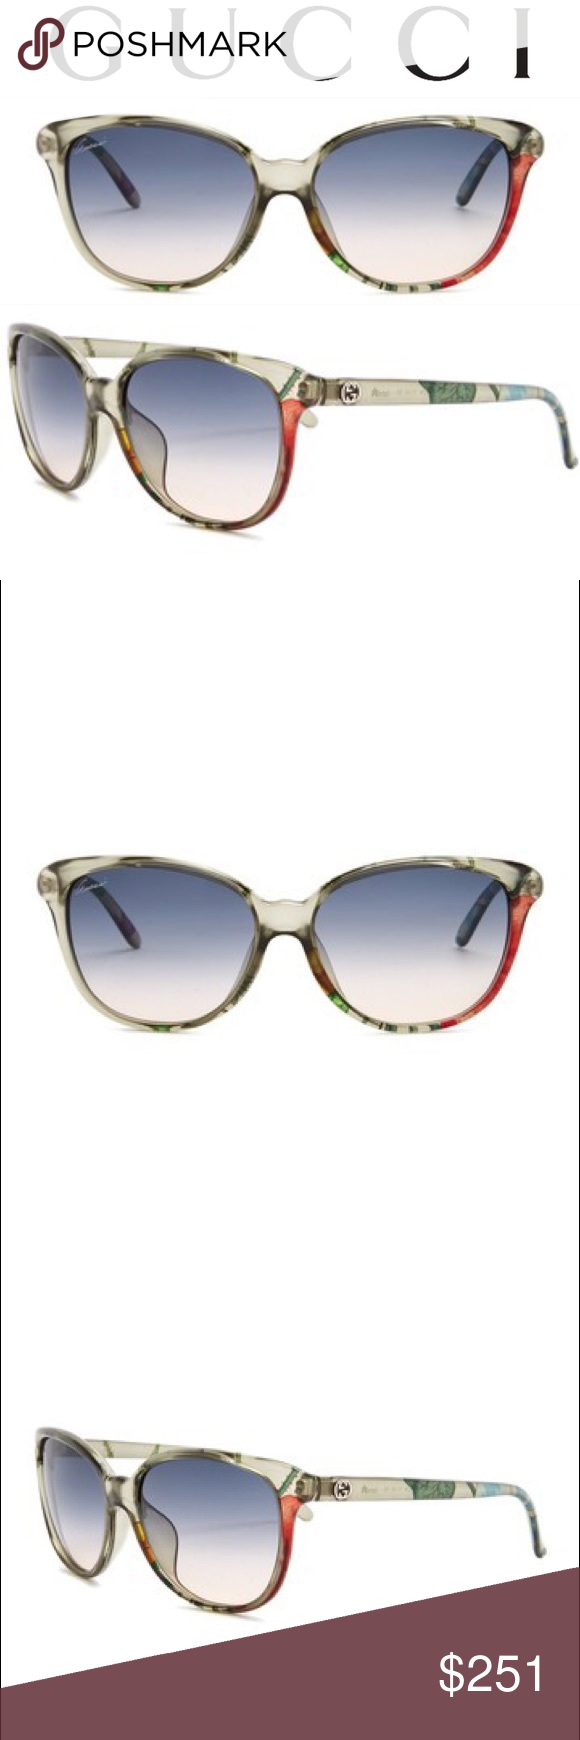 061bbba6679 GUCCI Women s Cat Eye Frame Sunglasses 💕 AUTHENTIC. Brand new in  packaging. Details